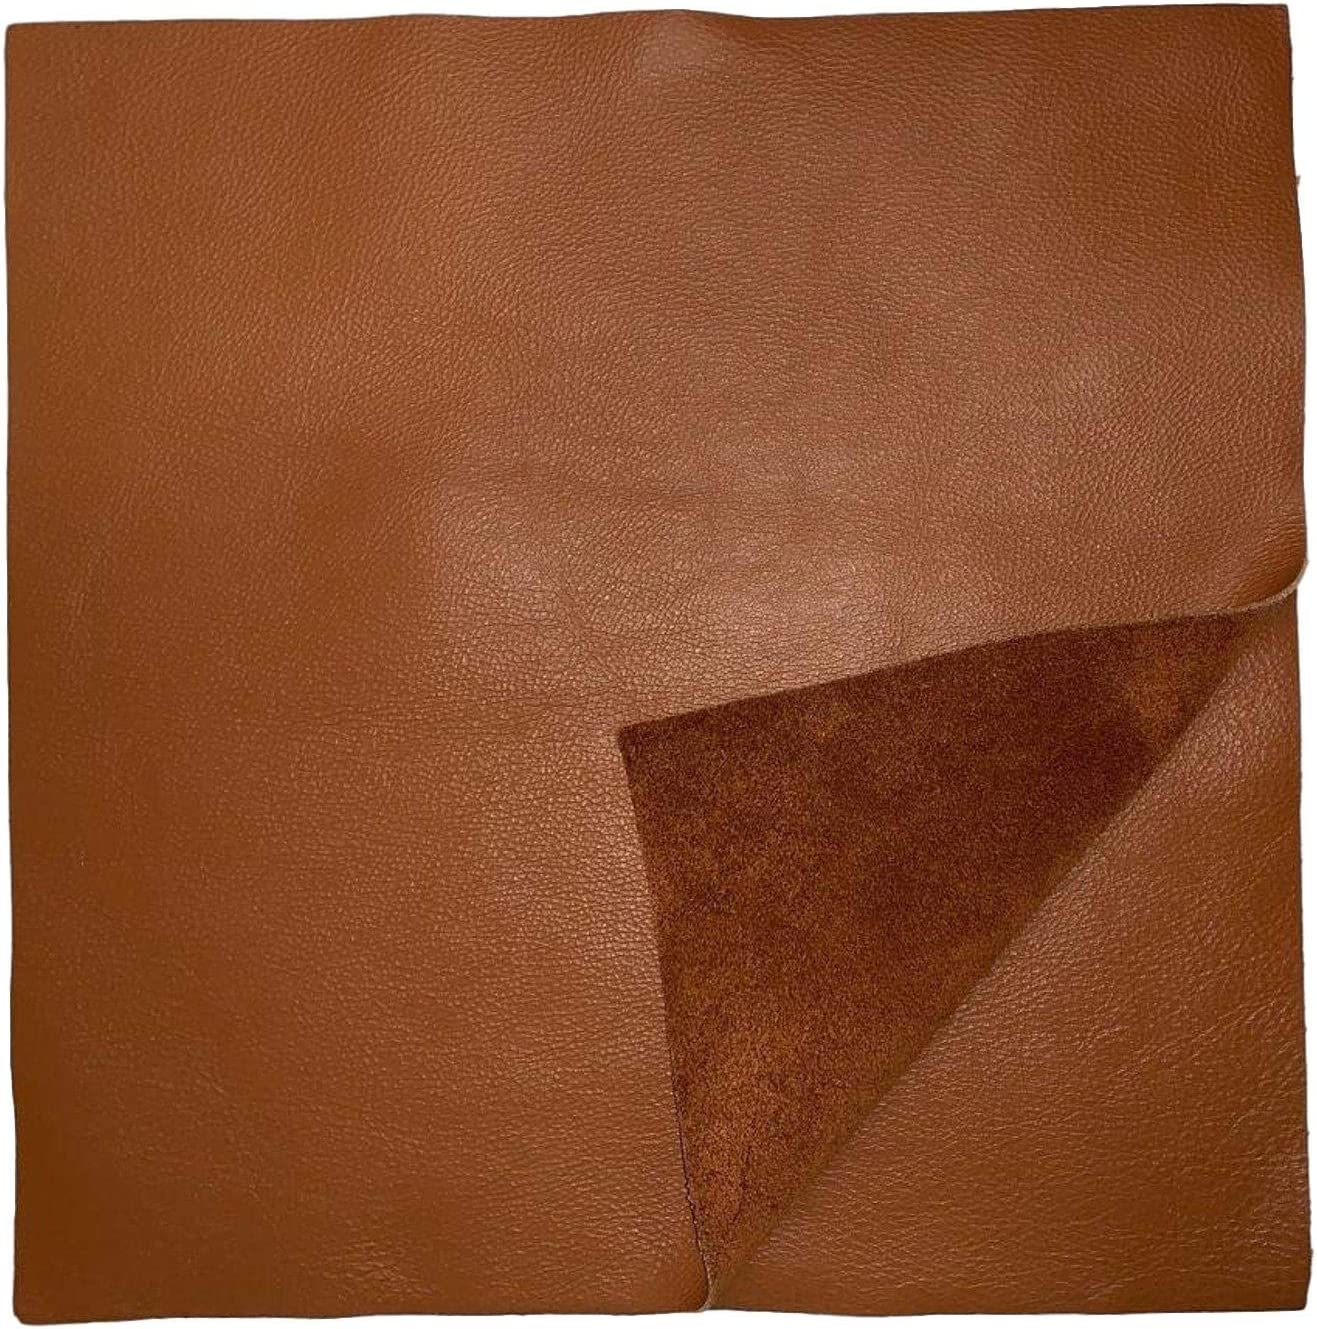 12 x 12 Cognac Cowhide: Soft Natural Pebble Grain Leather 2.5-3 oz Garments Perfect for Handbags and Leather Crafts! Shoes